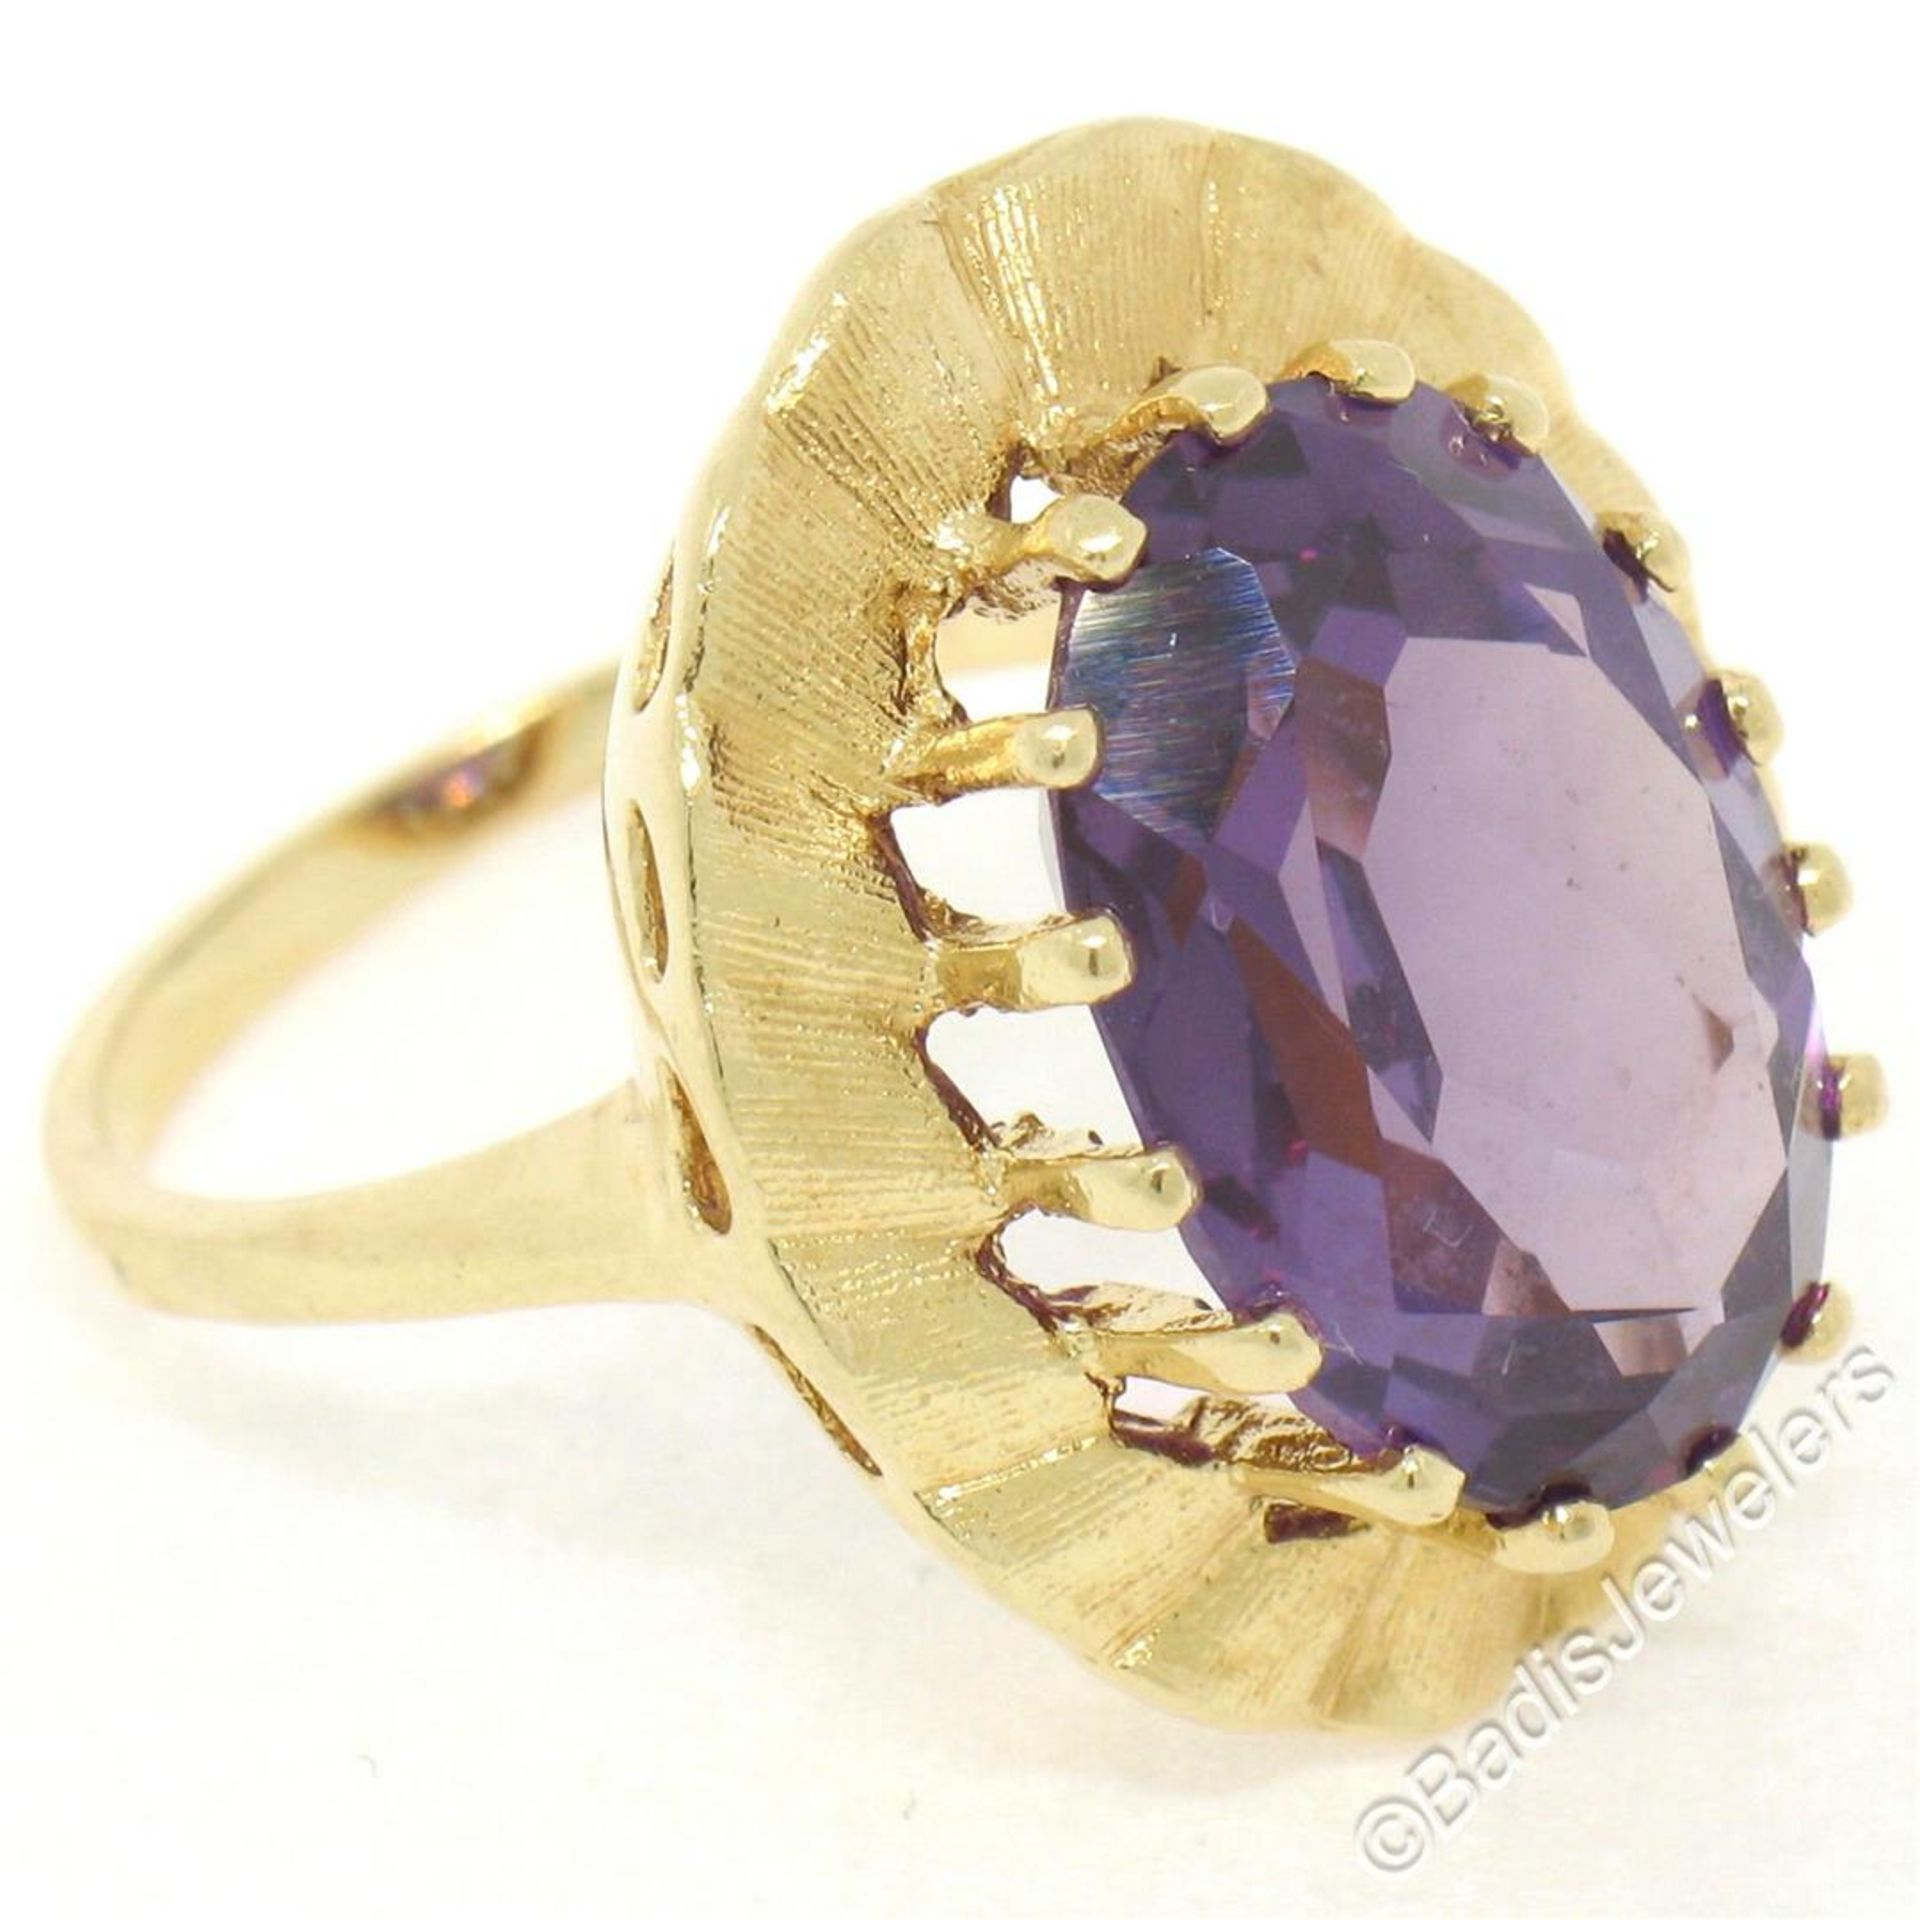 Vintage 14kt Yellow Gold Oval Synthetic Alexandrite Ring w/ Textured Halo - Image 7 of 9